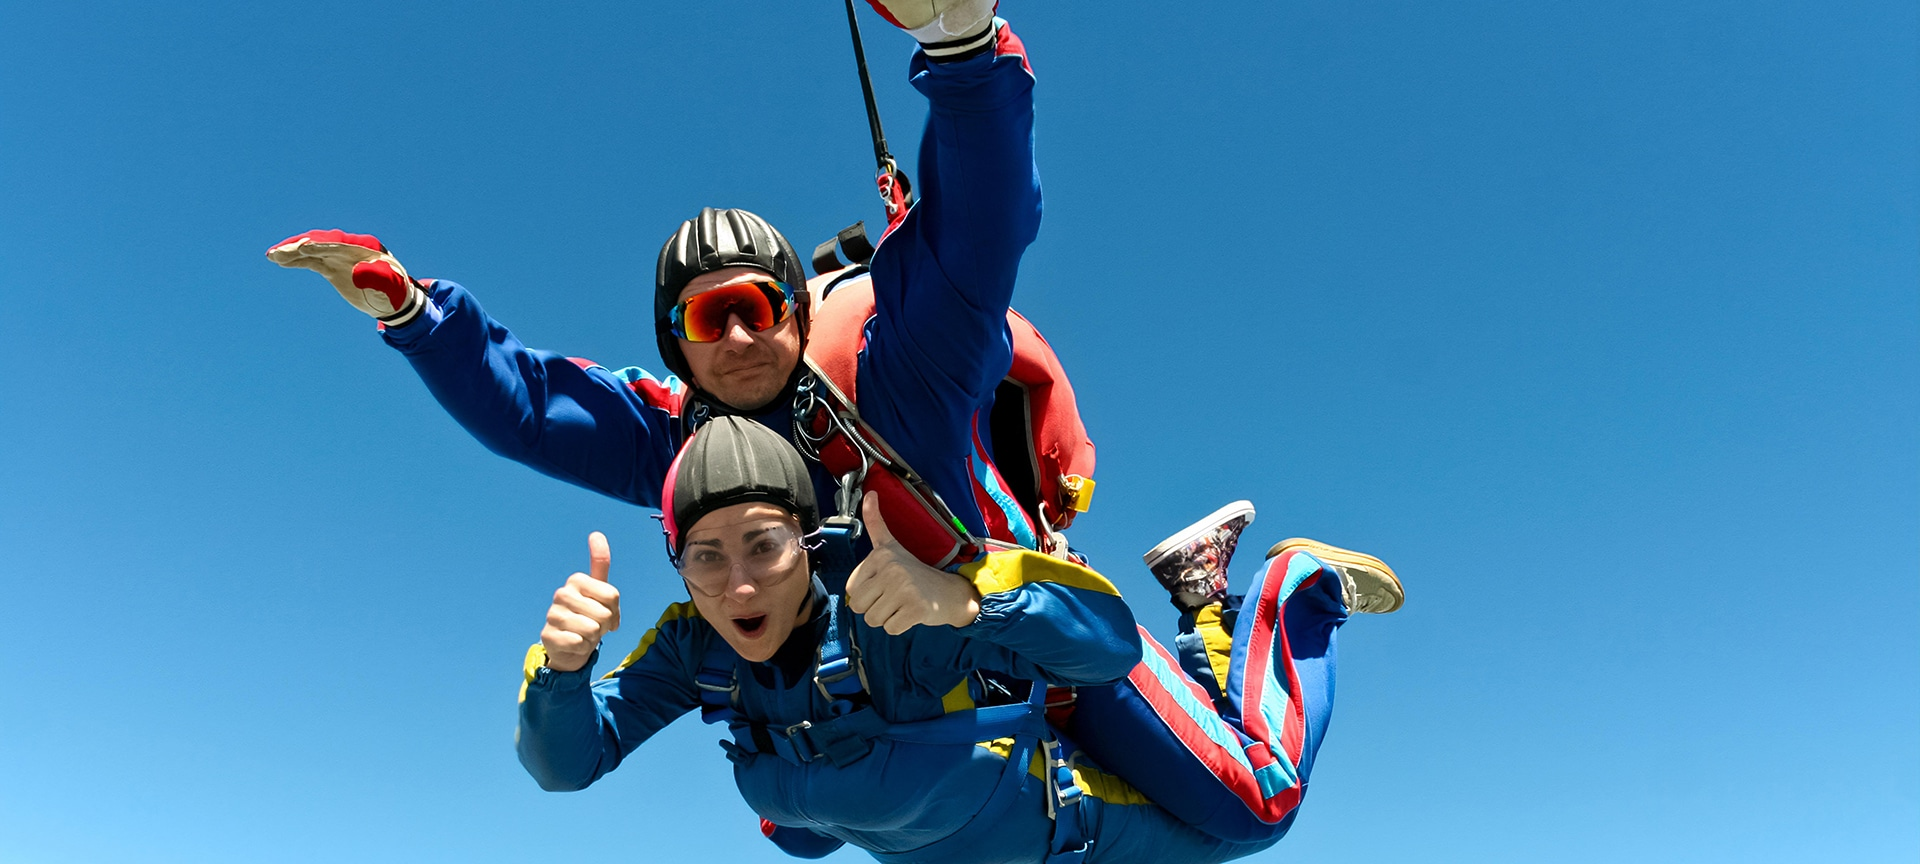 A tandem skydive is the thrill of a lifetime, from the rush as you jump from the aircraft, to the realisation you're in freefall, to the moment the parachute begins to open above you.